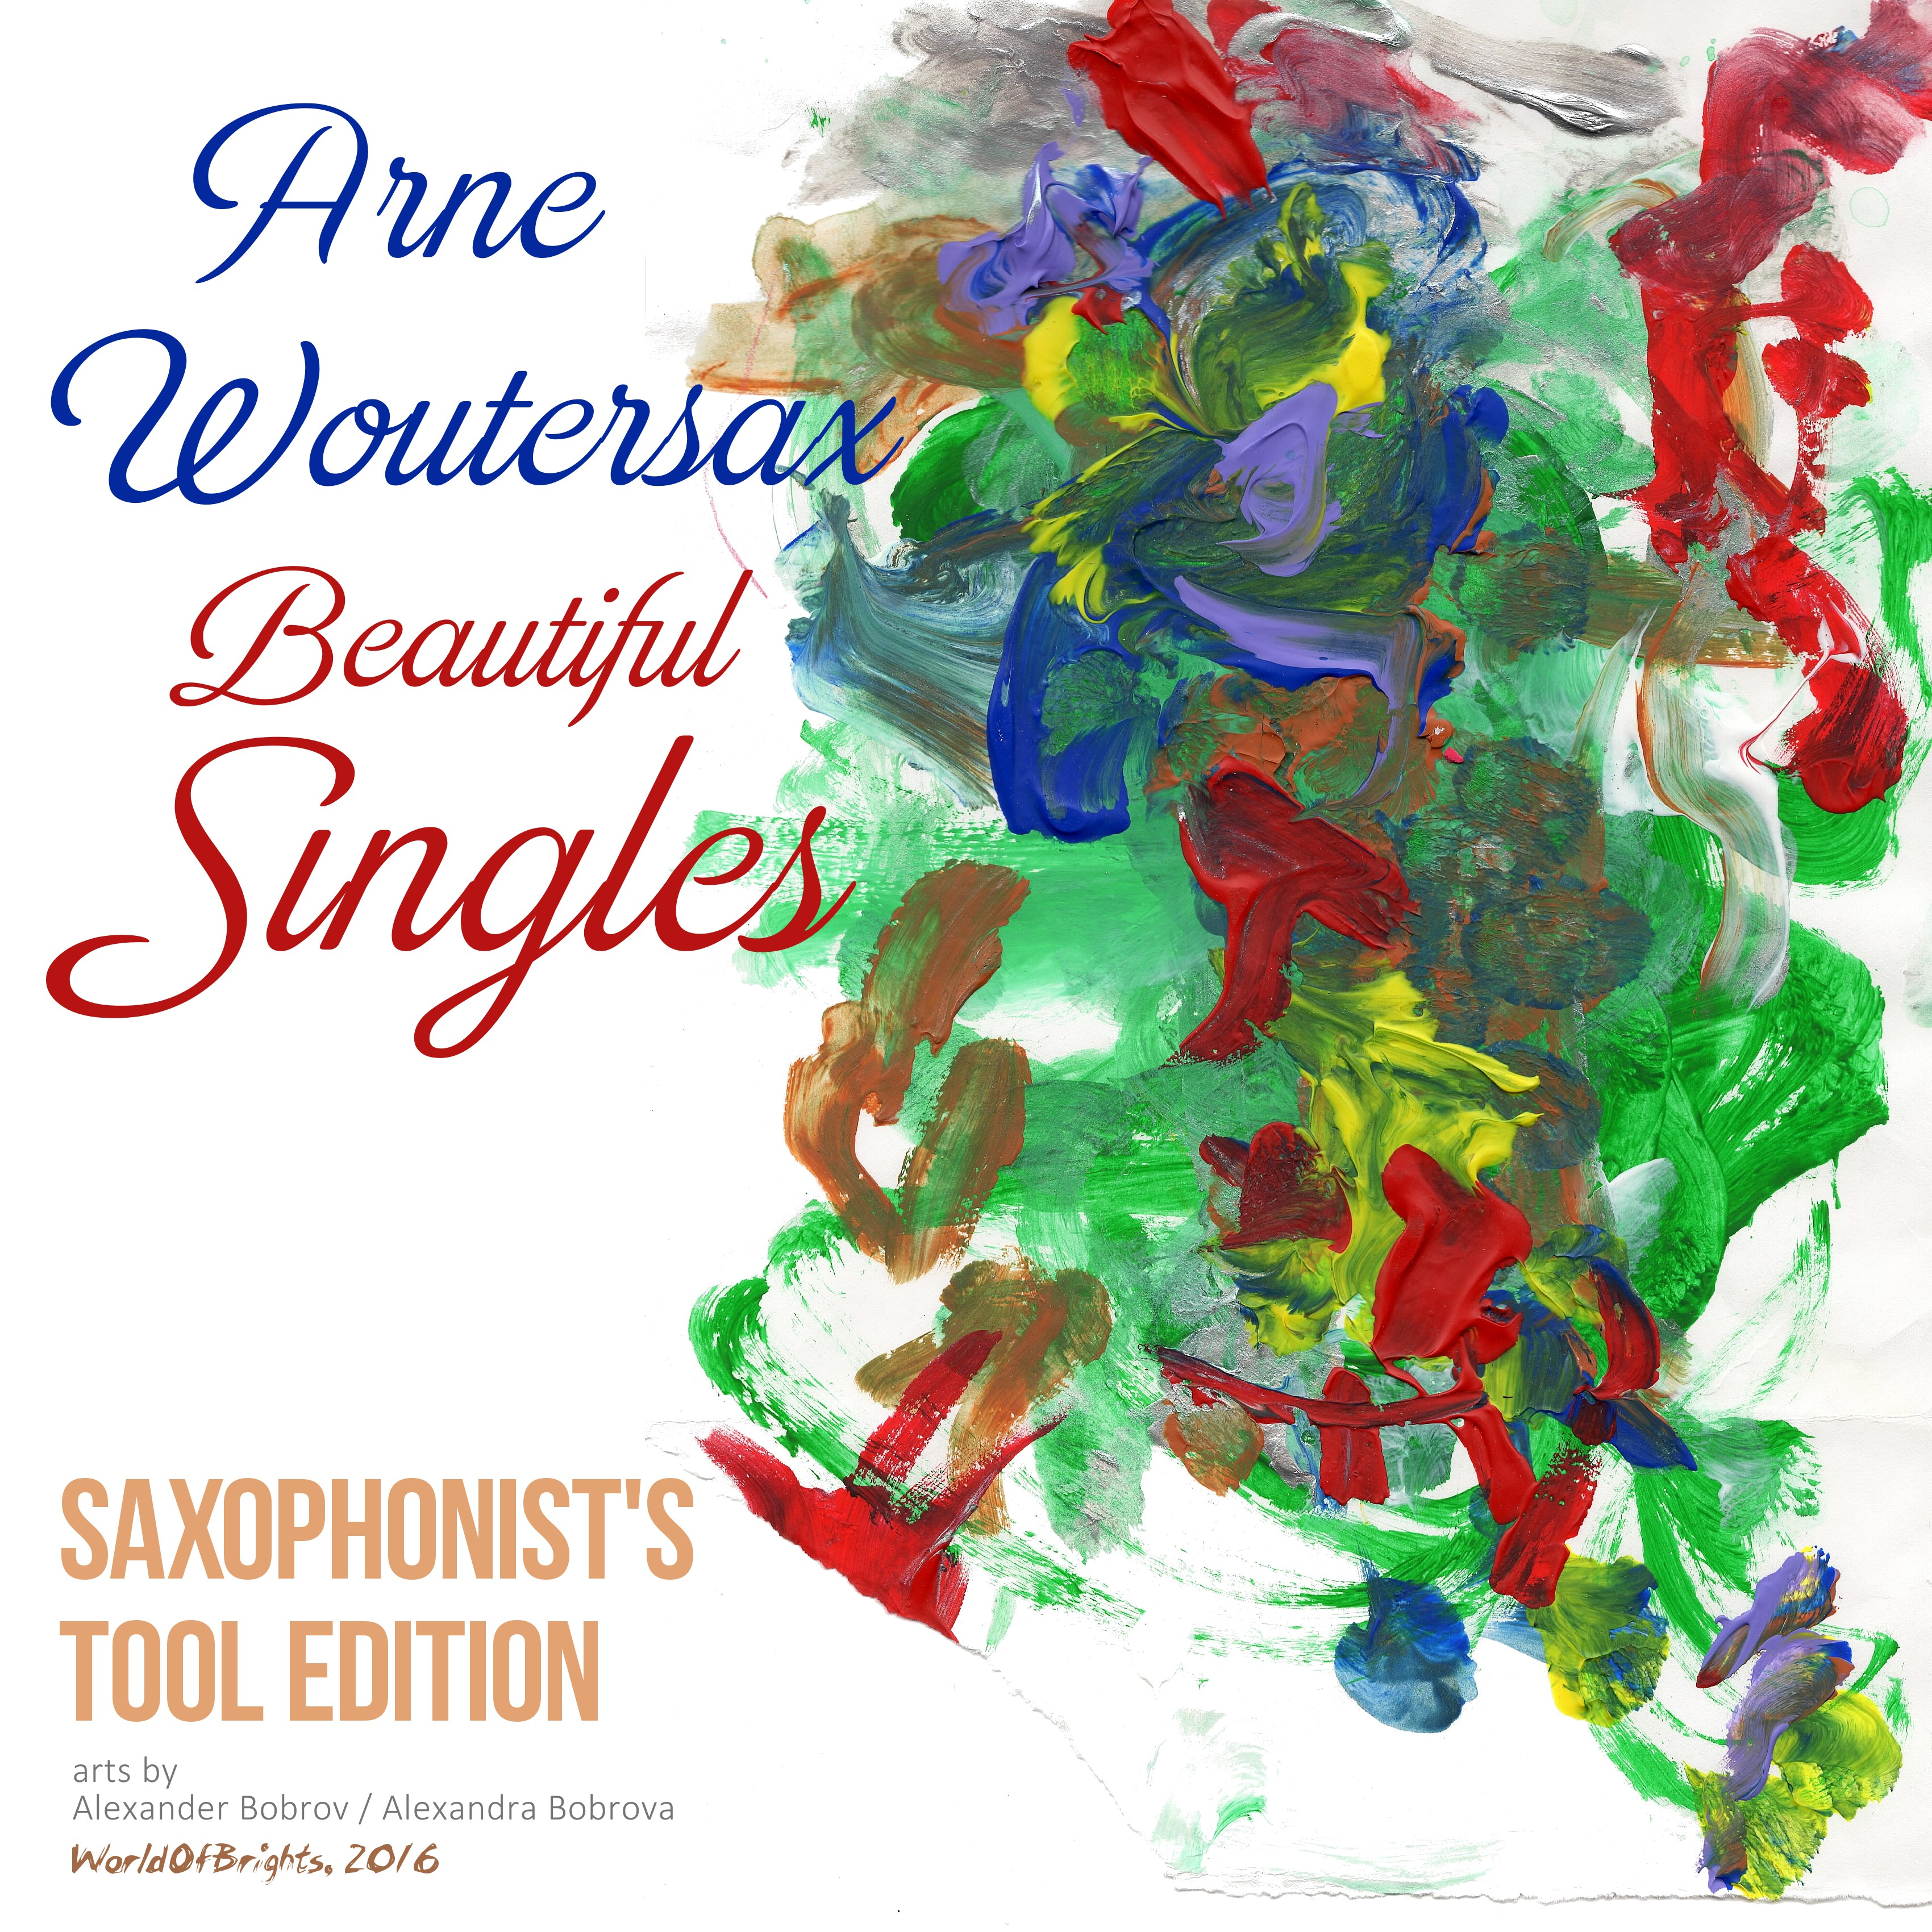 Arne Woutersax - Beautiful Singles: Saxophonist's Tool Edition by WorldOfBrights